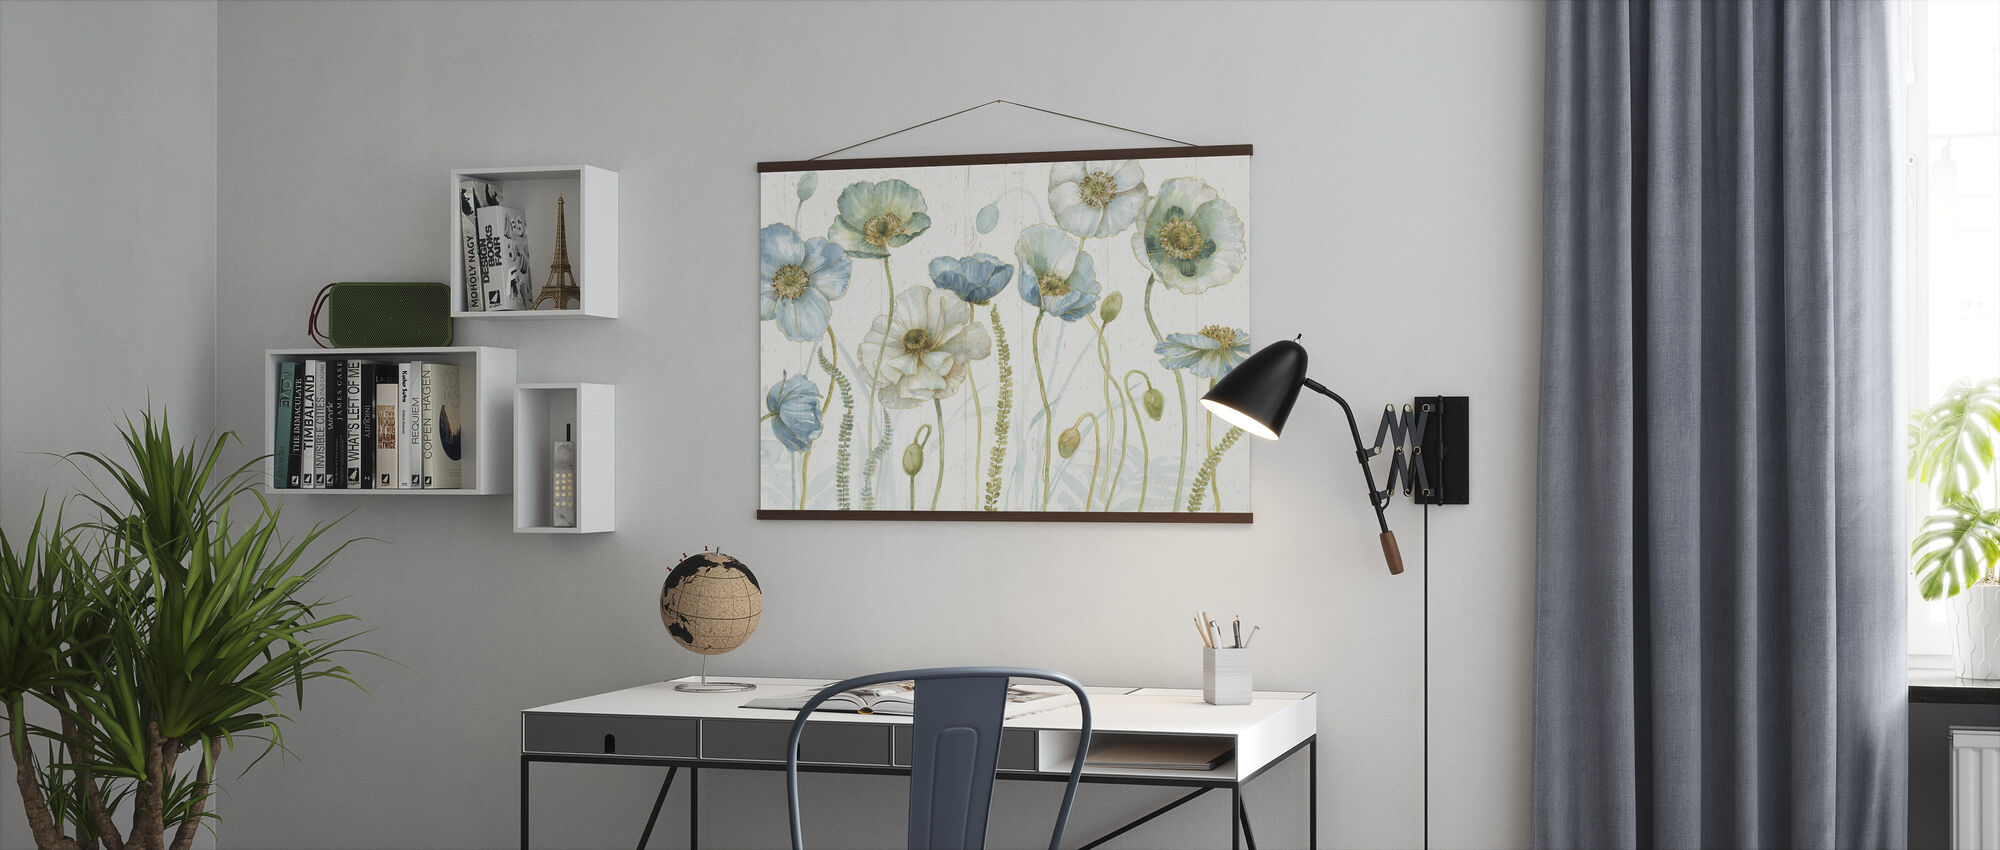 My Greenhouse Flowers on Wood - Poster - Office